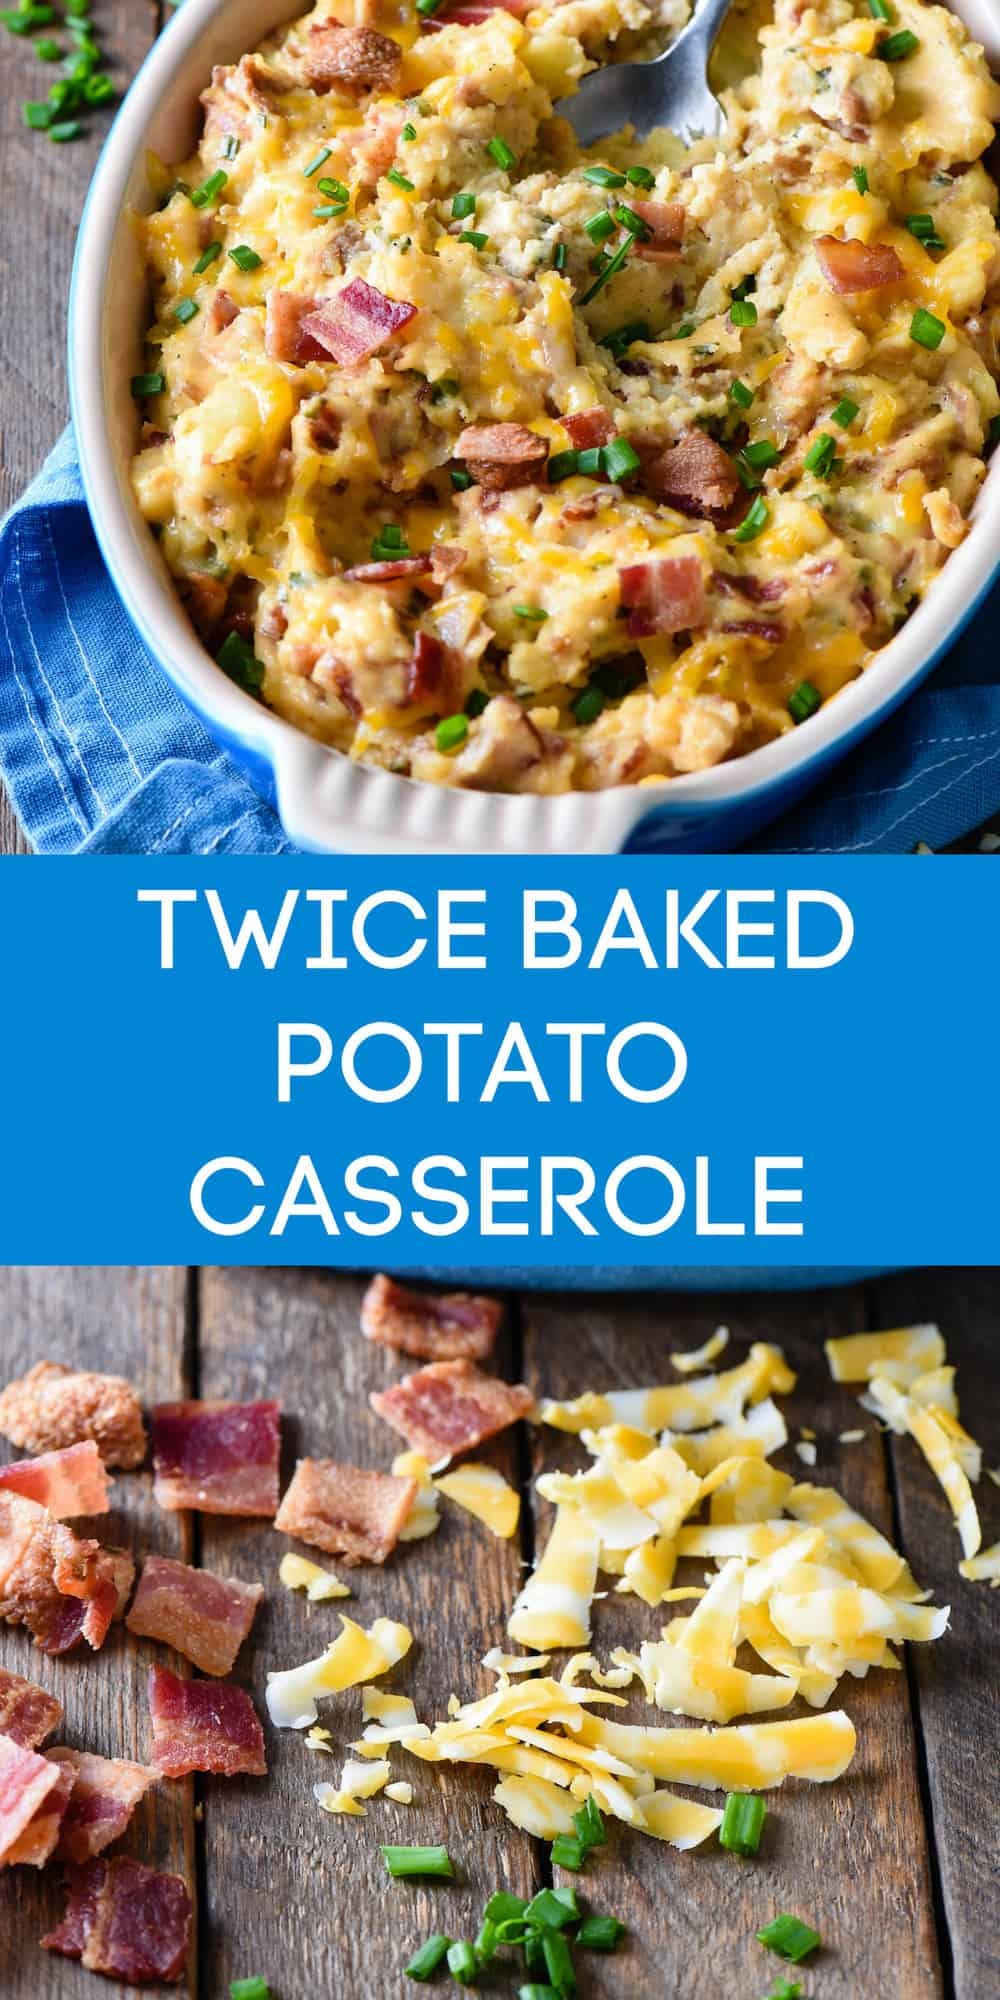 This Twice Baked Potato Casserole recipe is a perfect holiday side dish, but easy enough to make anytime. Smashed potatoes are mixed with cheese and bacon for a comforting and delicious casserole. | foxeslovelemons.com